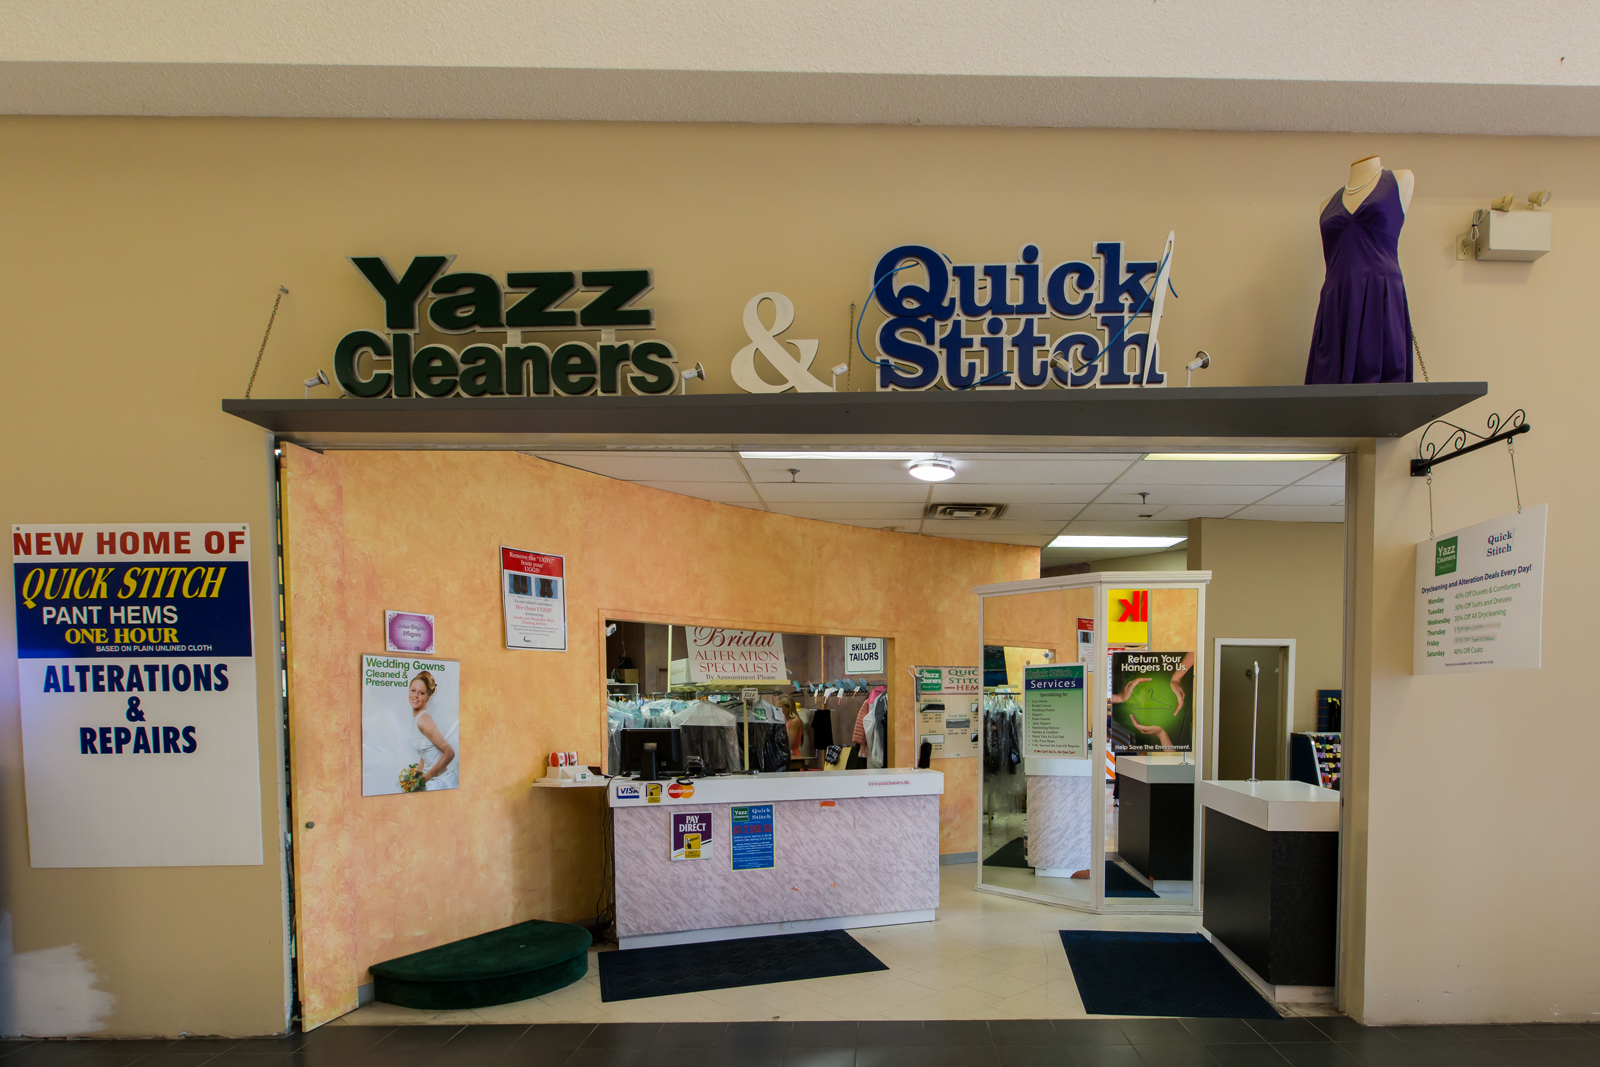 Yazz Cleaners/Quick Stitch